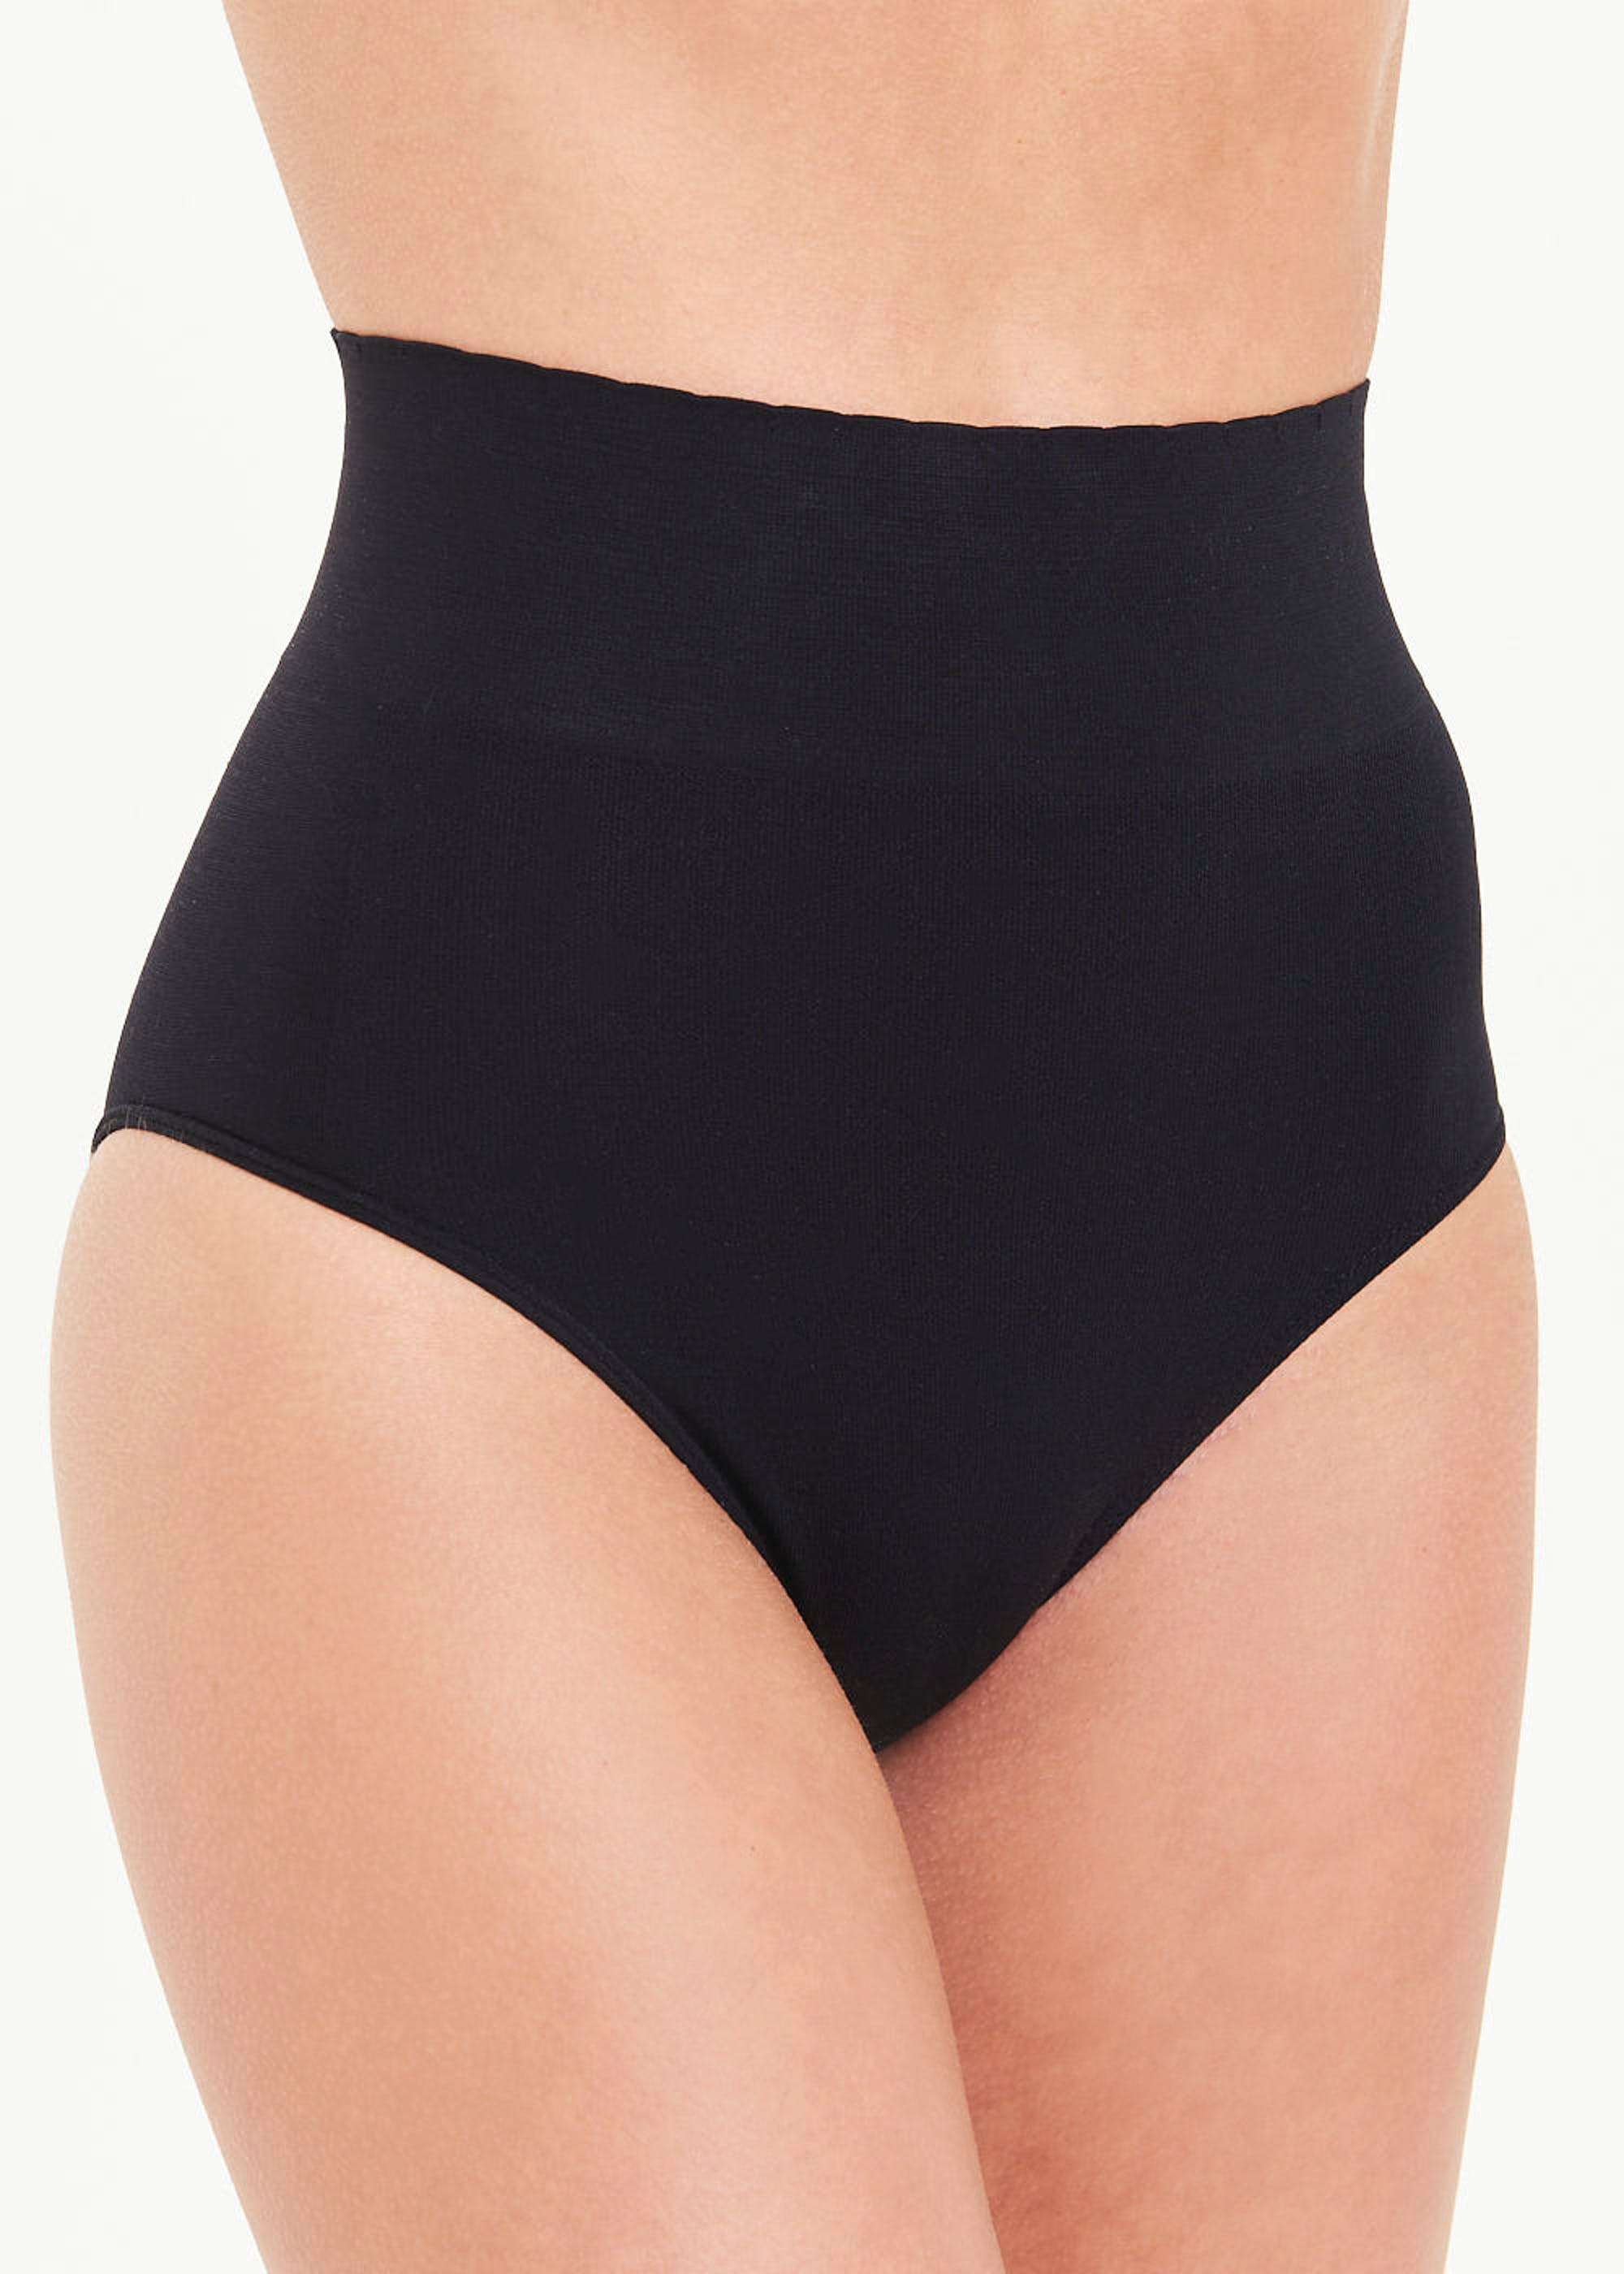 3 Pack Seam Free Light Control Knickers Multi NfnmyB